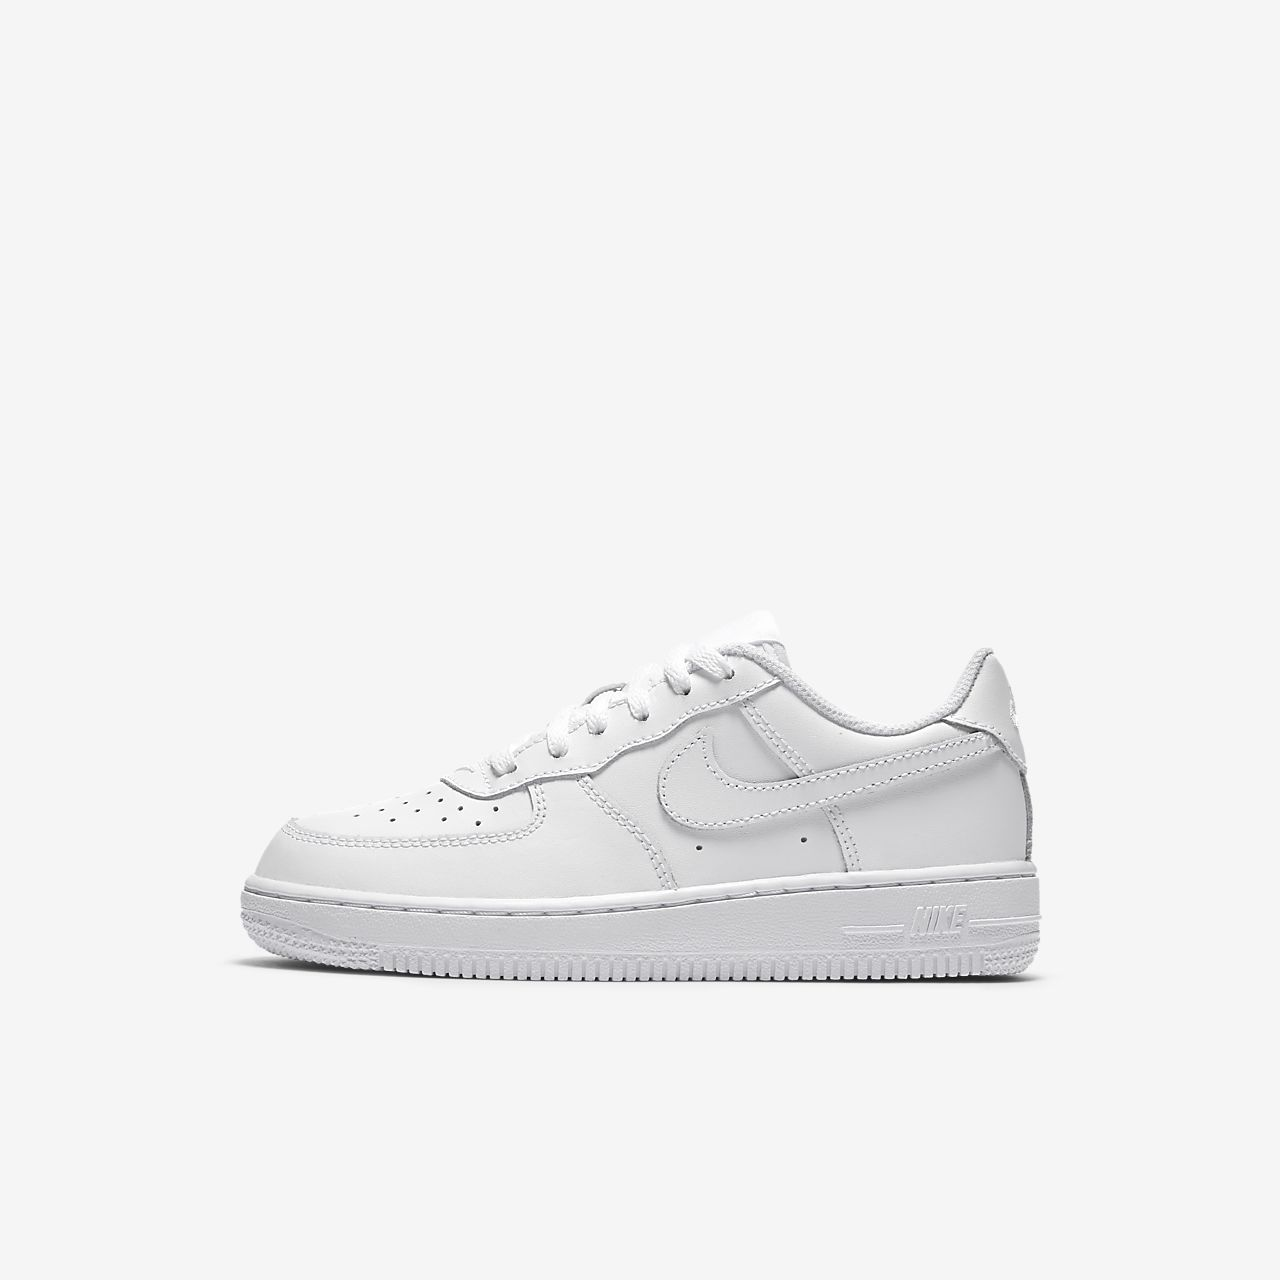 how much are nike air force shoes for boys